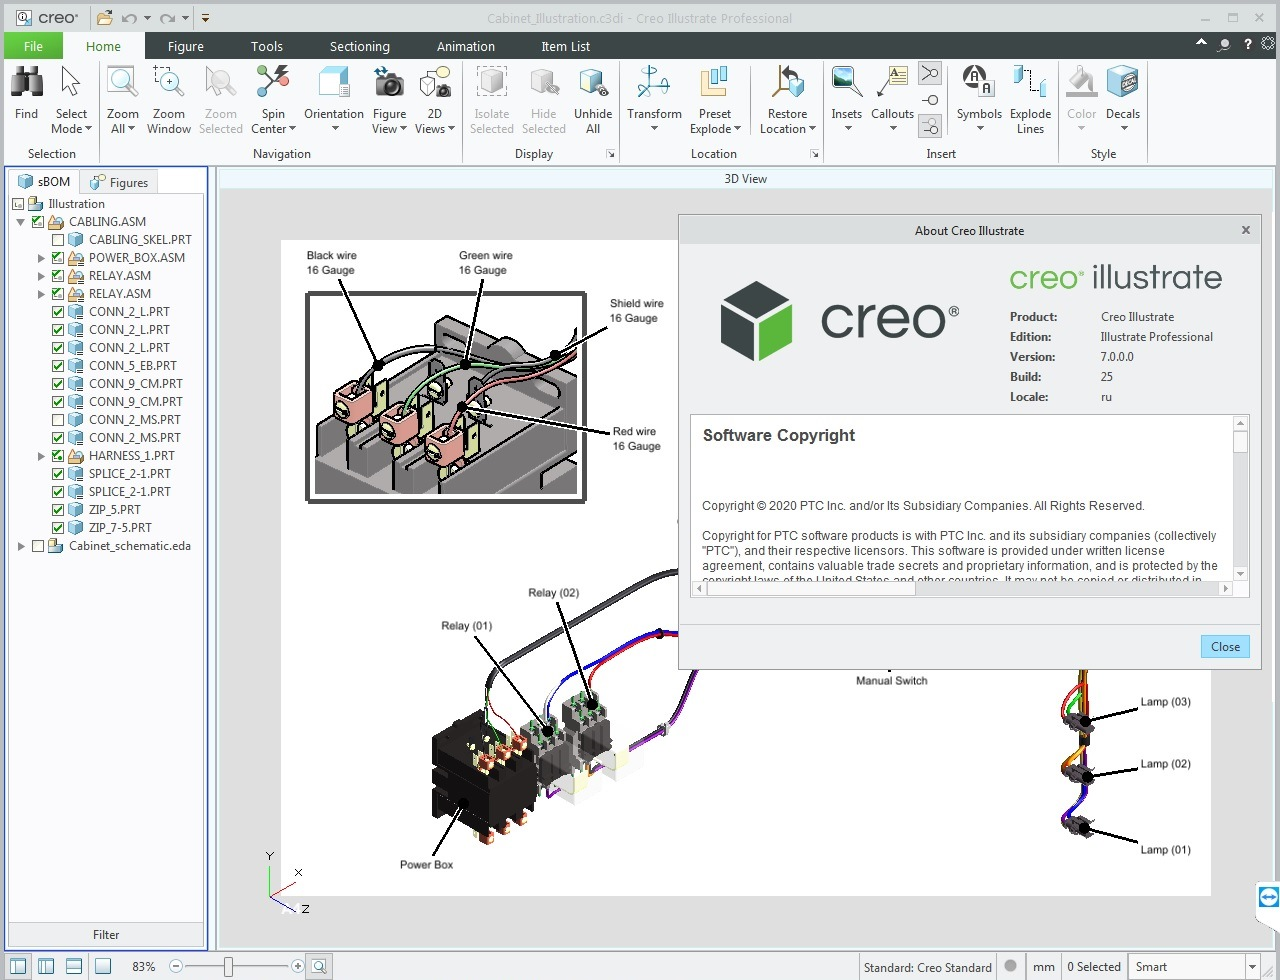 Working with PTC Creo Illustrate 7.0.0.0 full license